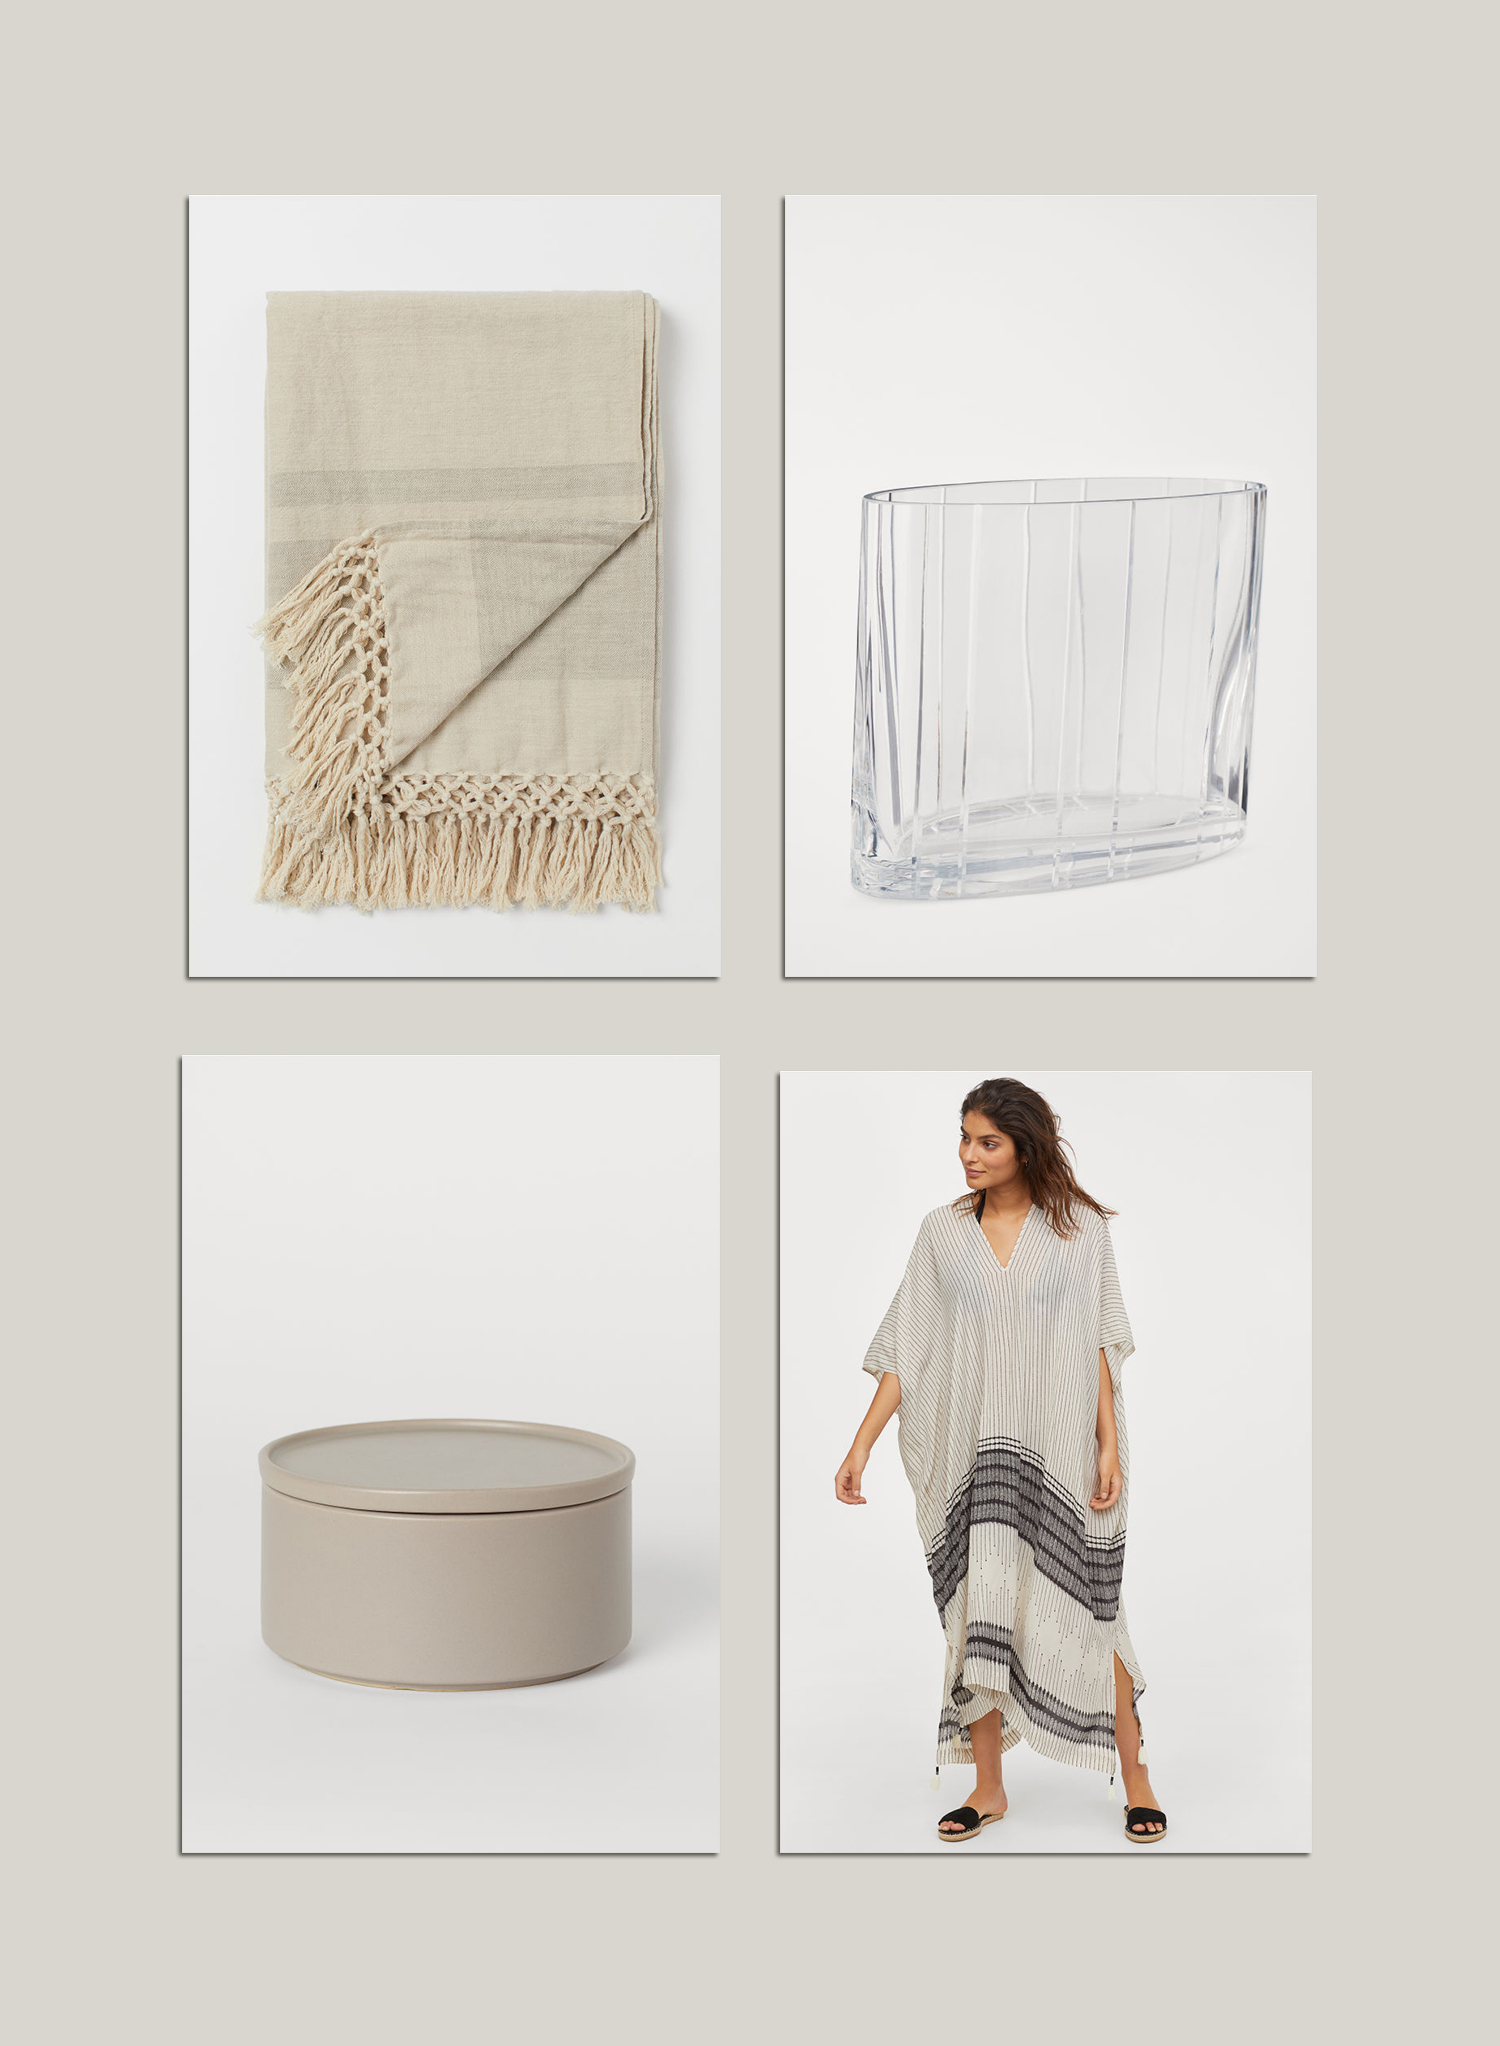 4 pieces from the new spring collection of H&M Home / via @kronekern